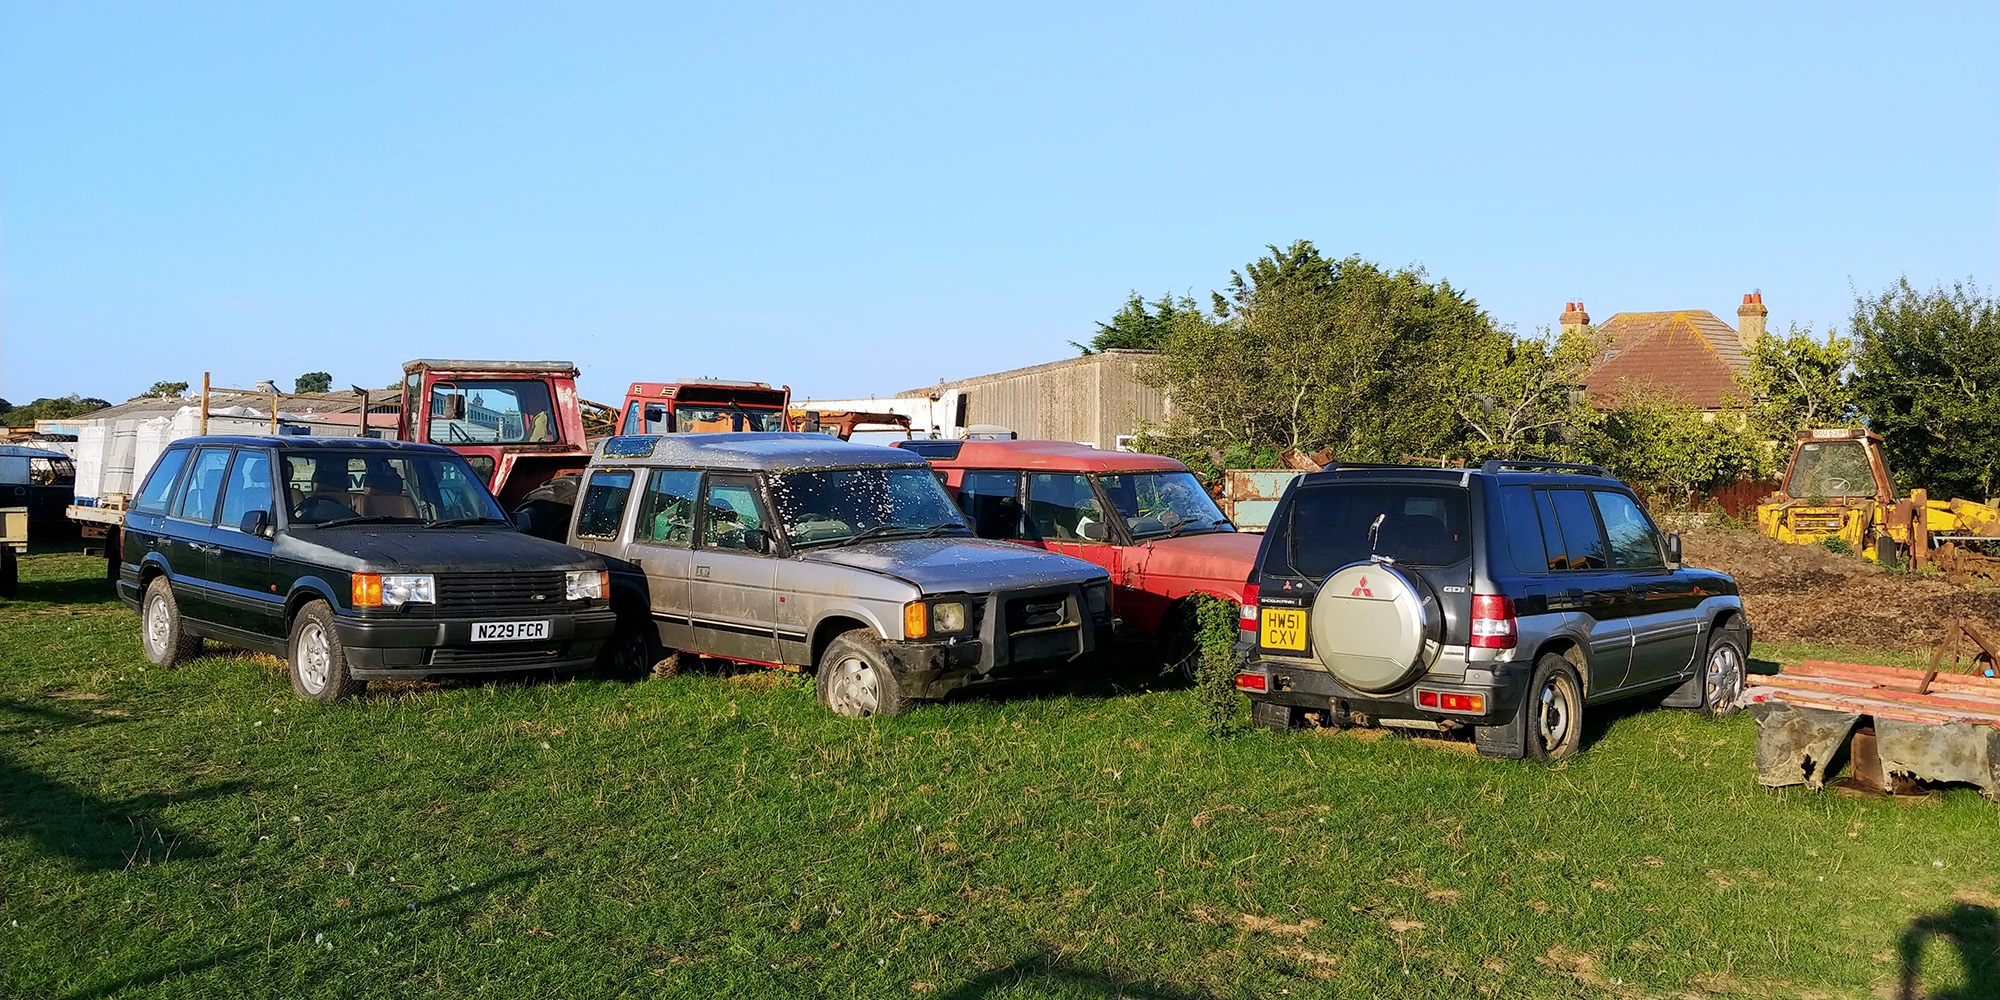 Why so many abandoned vehicles? Unclear. But fun :-)